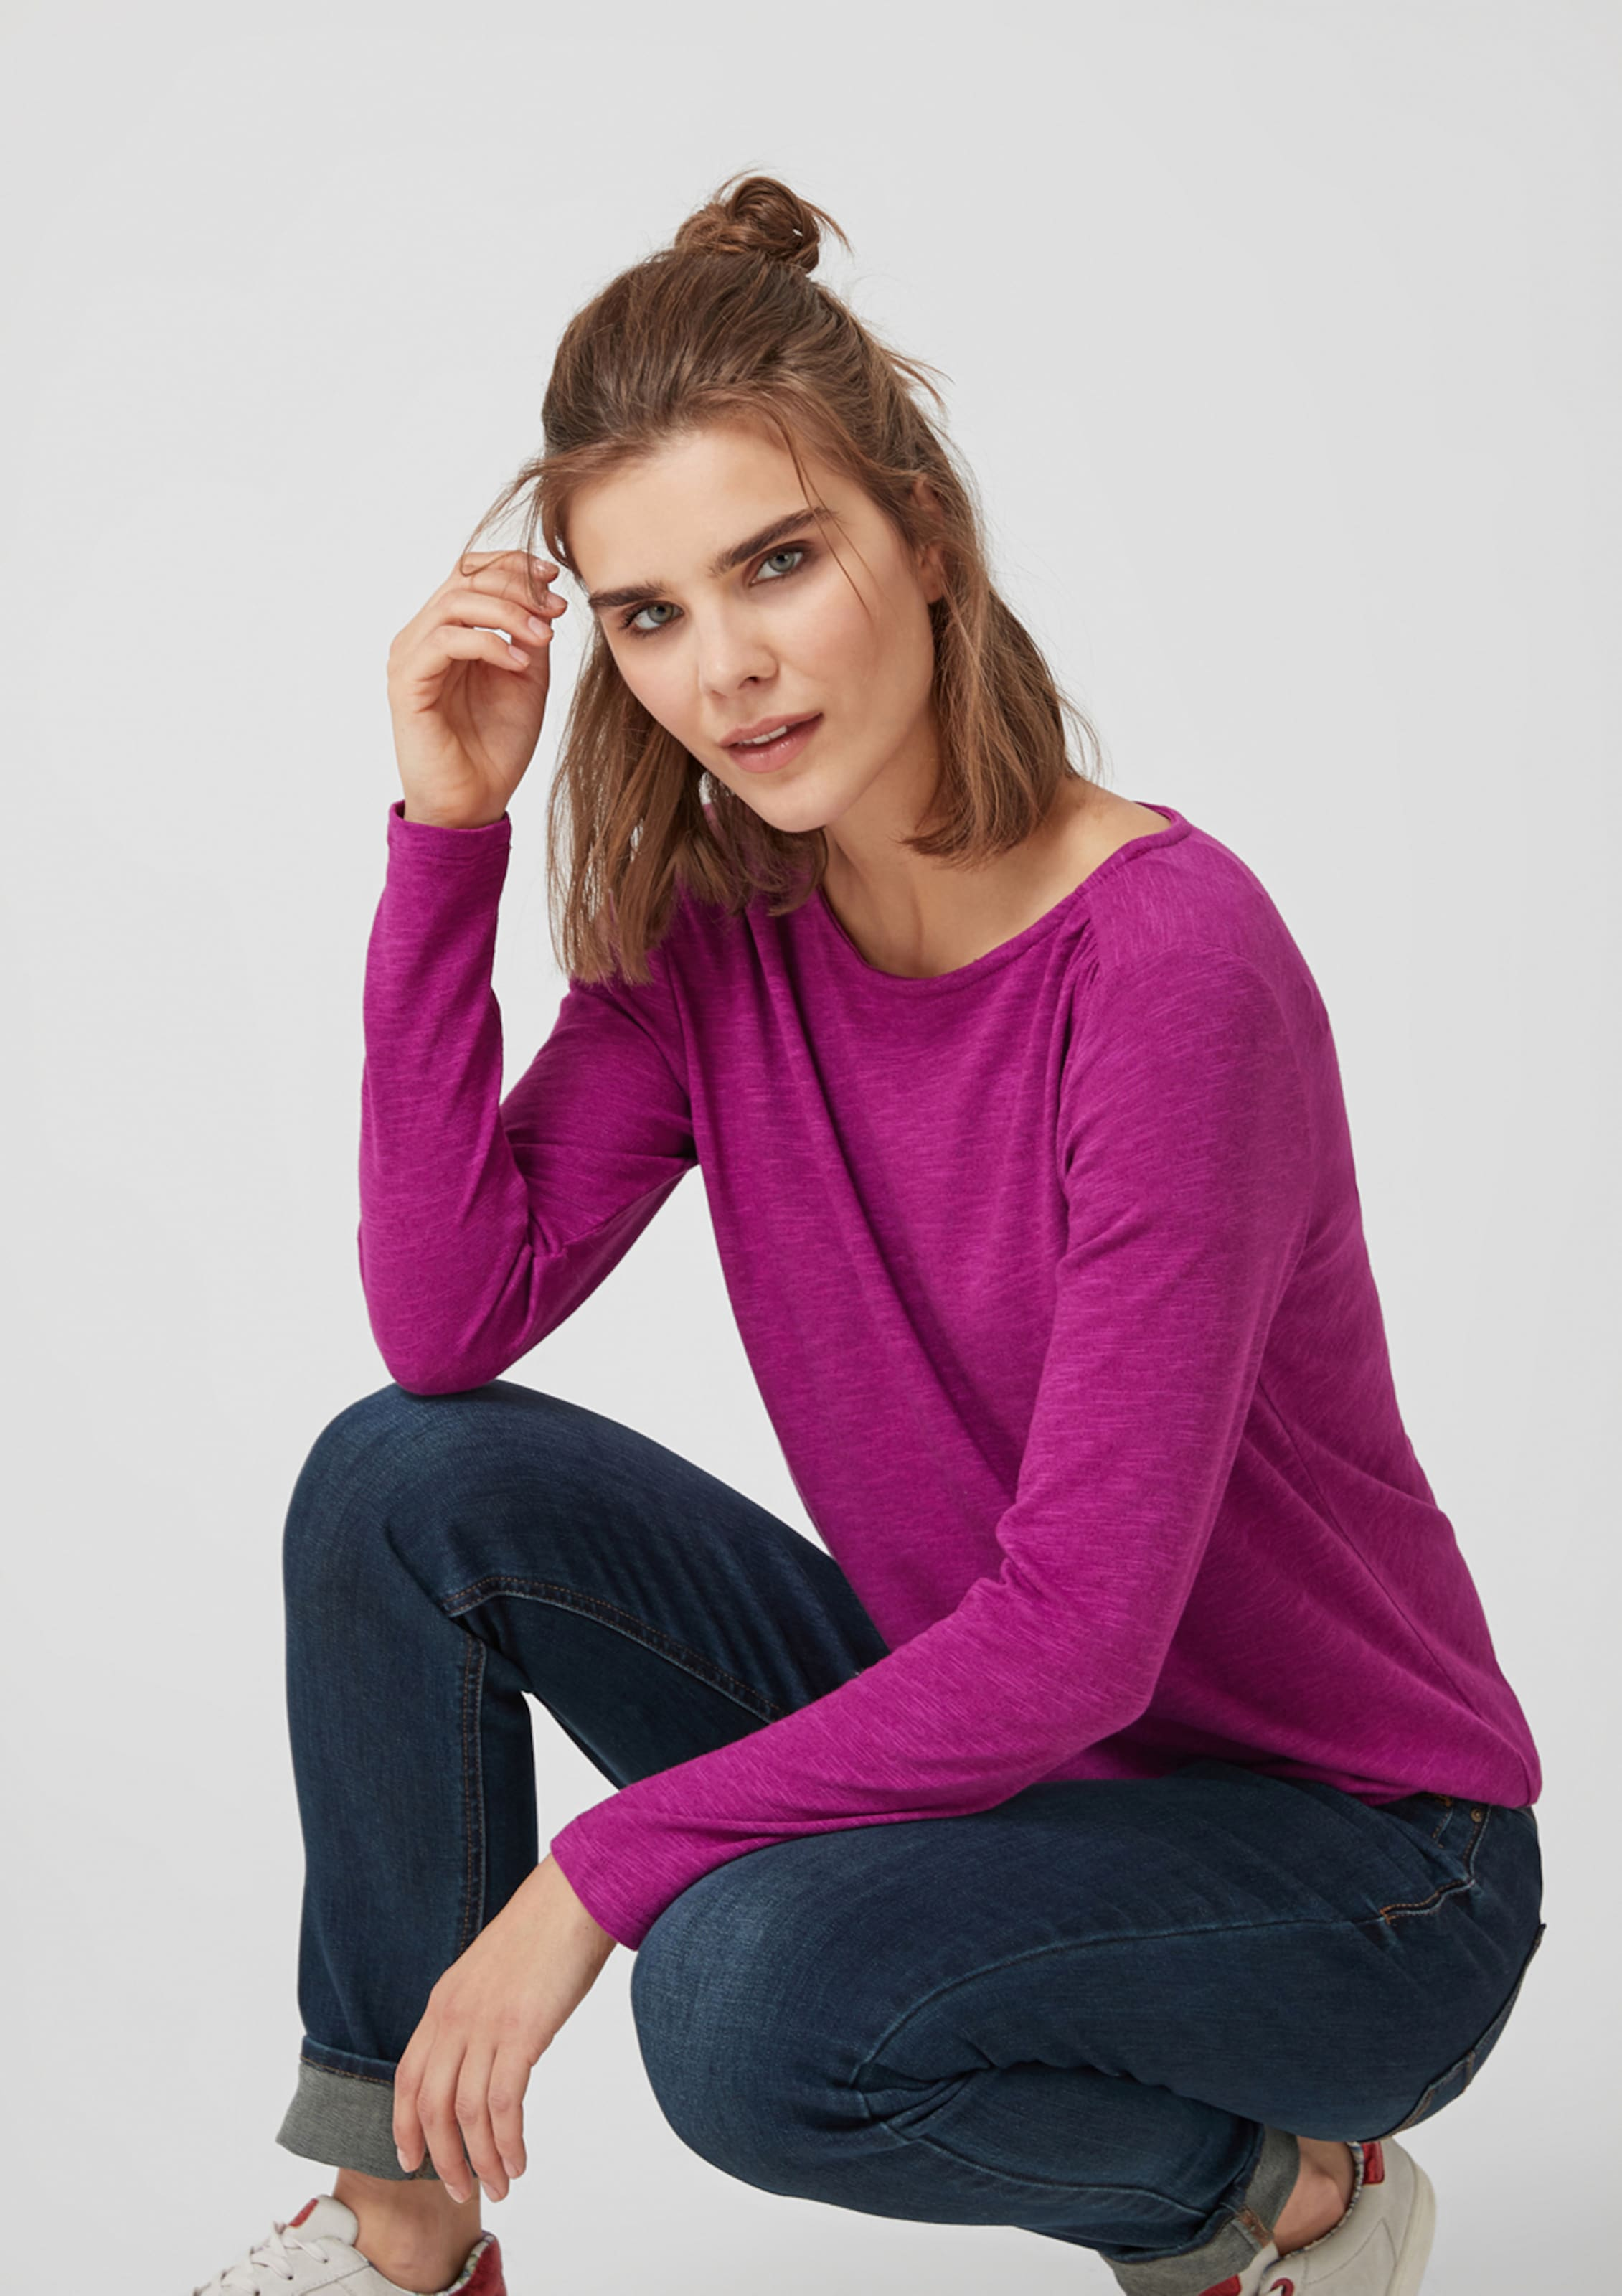 In oliver S S oliver oliver Pink Pink In Shirt S Shirt nk8wP0OX